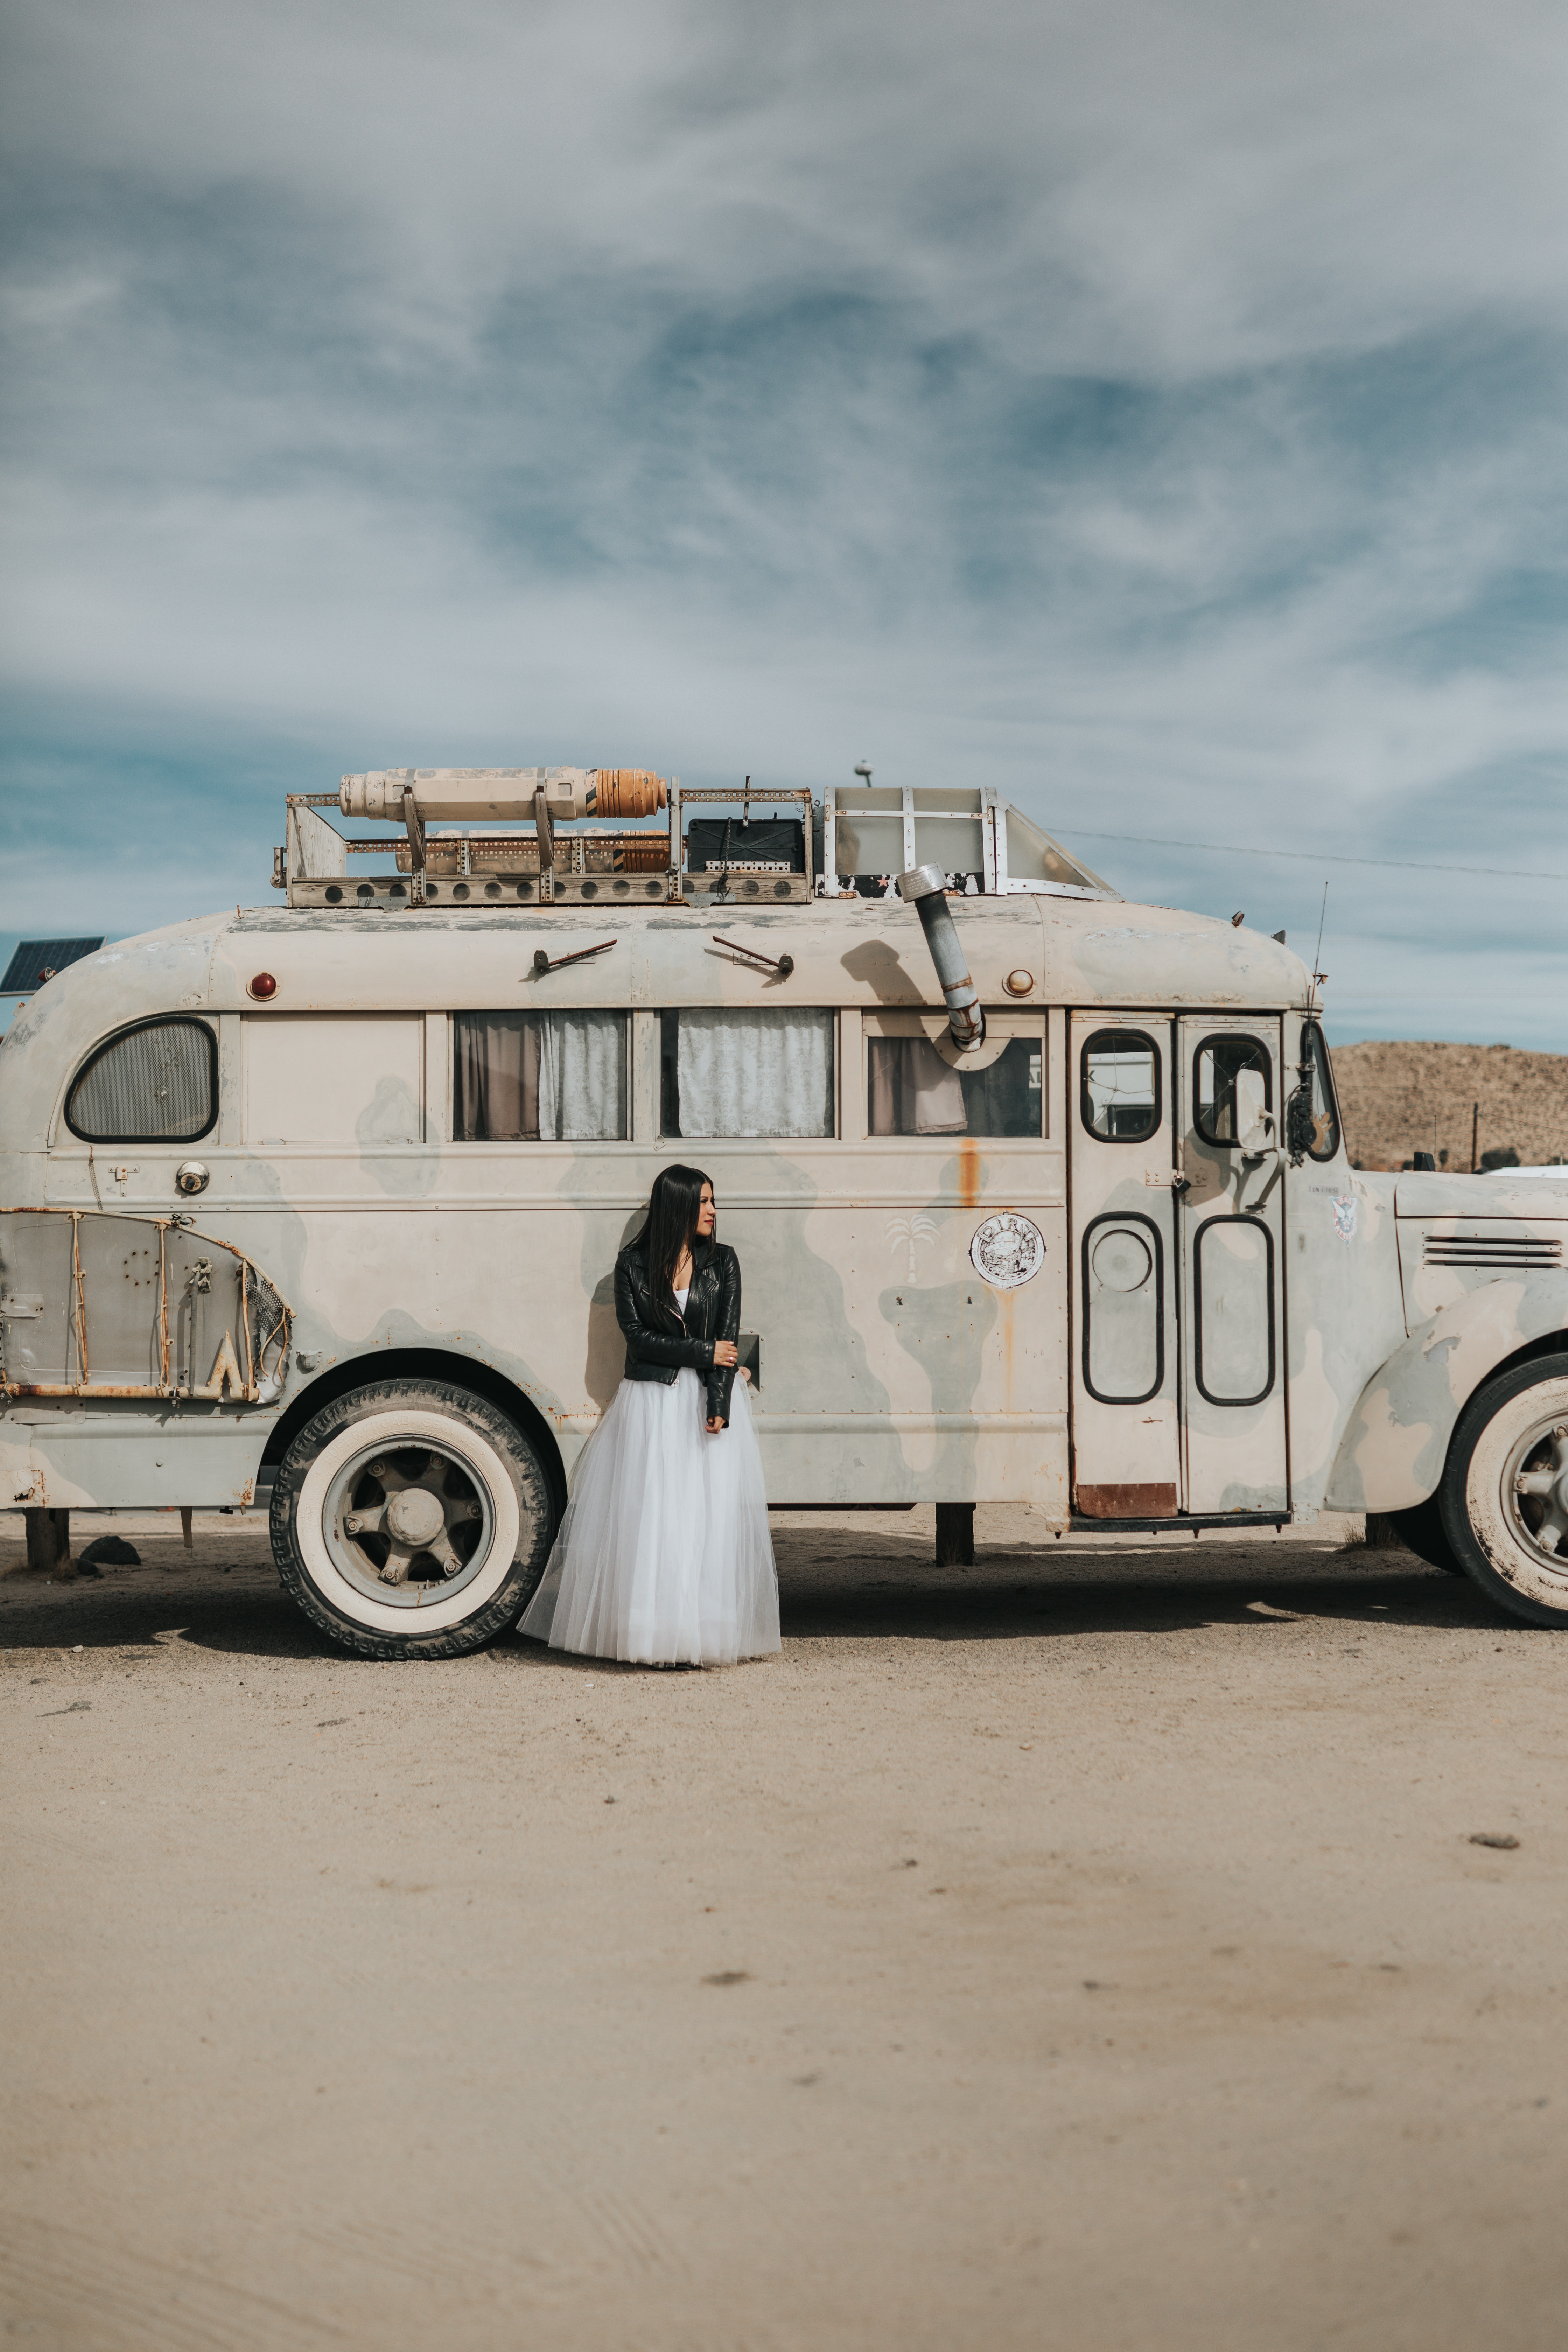 woman standing next to white RV